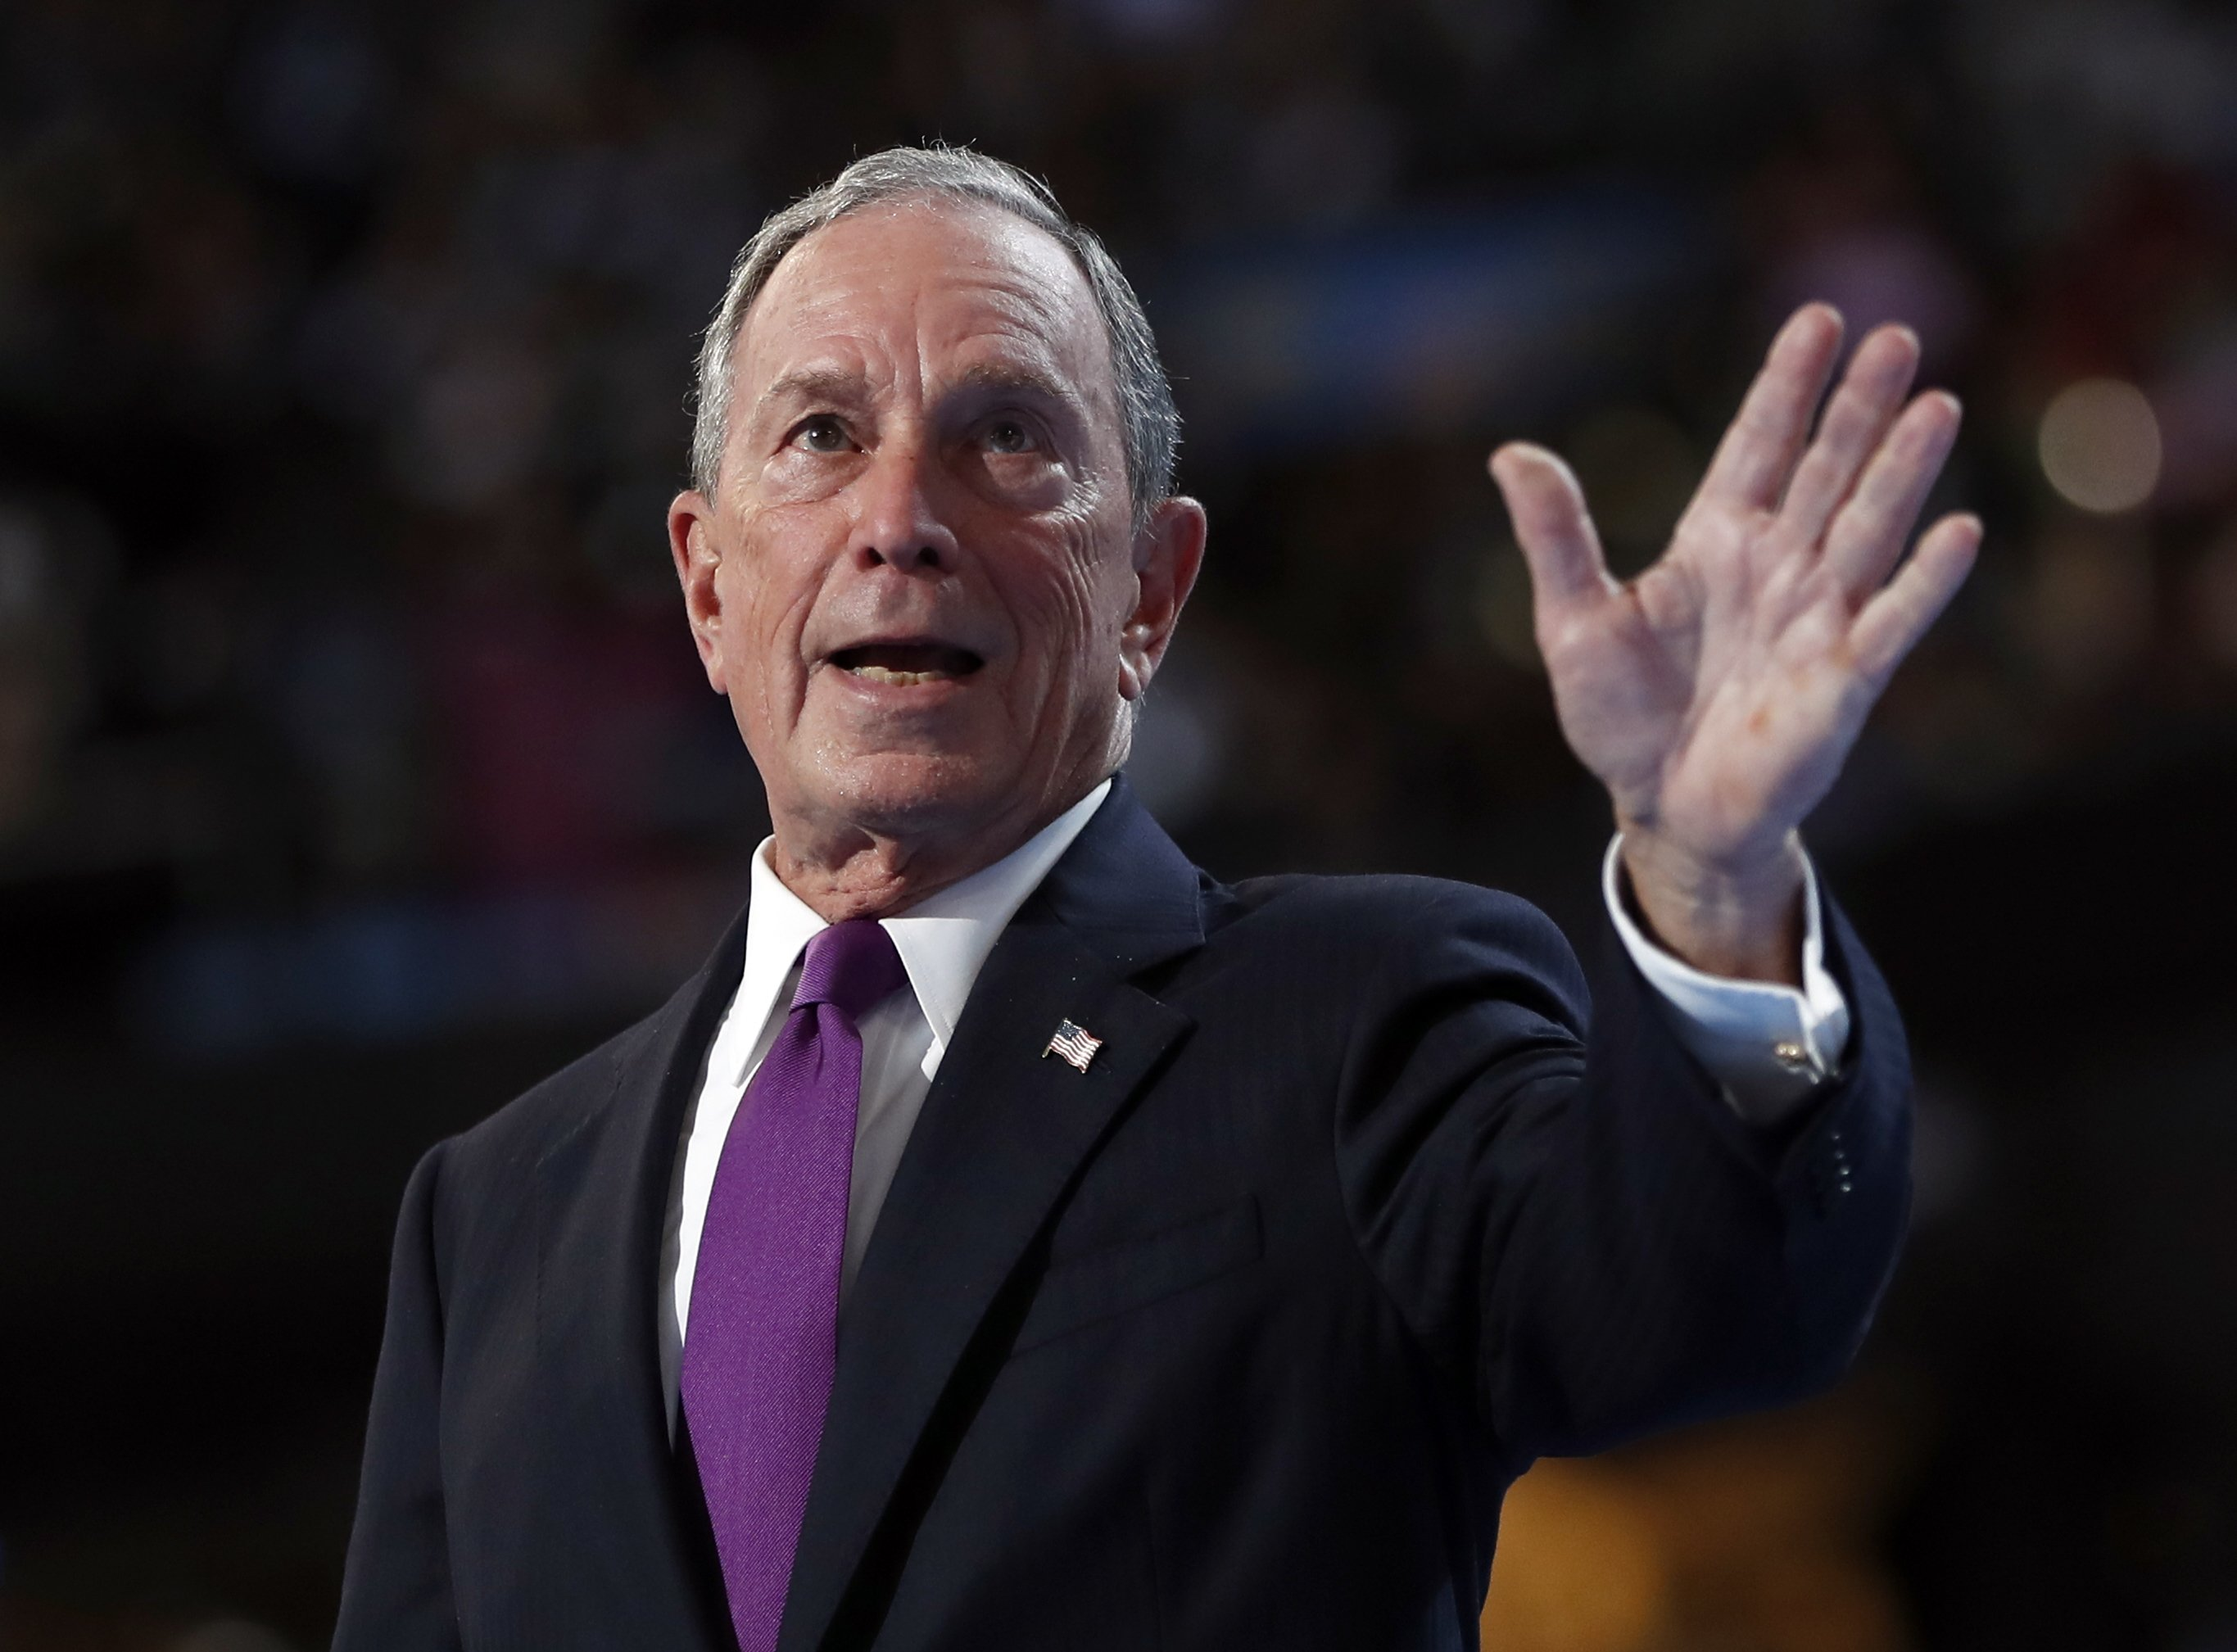 Trump, Bloomberg escalate New York billionaire brawl